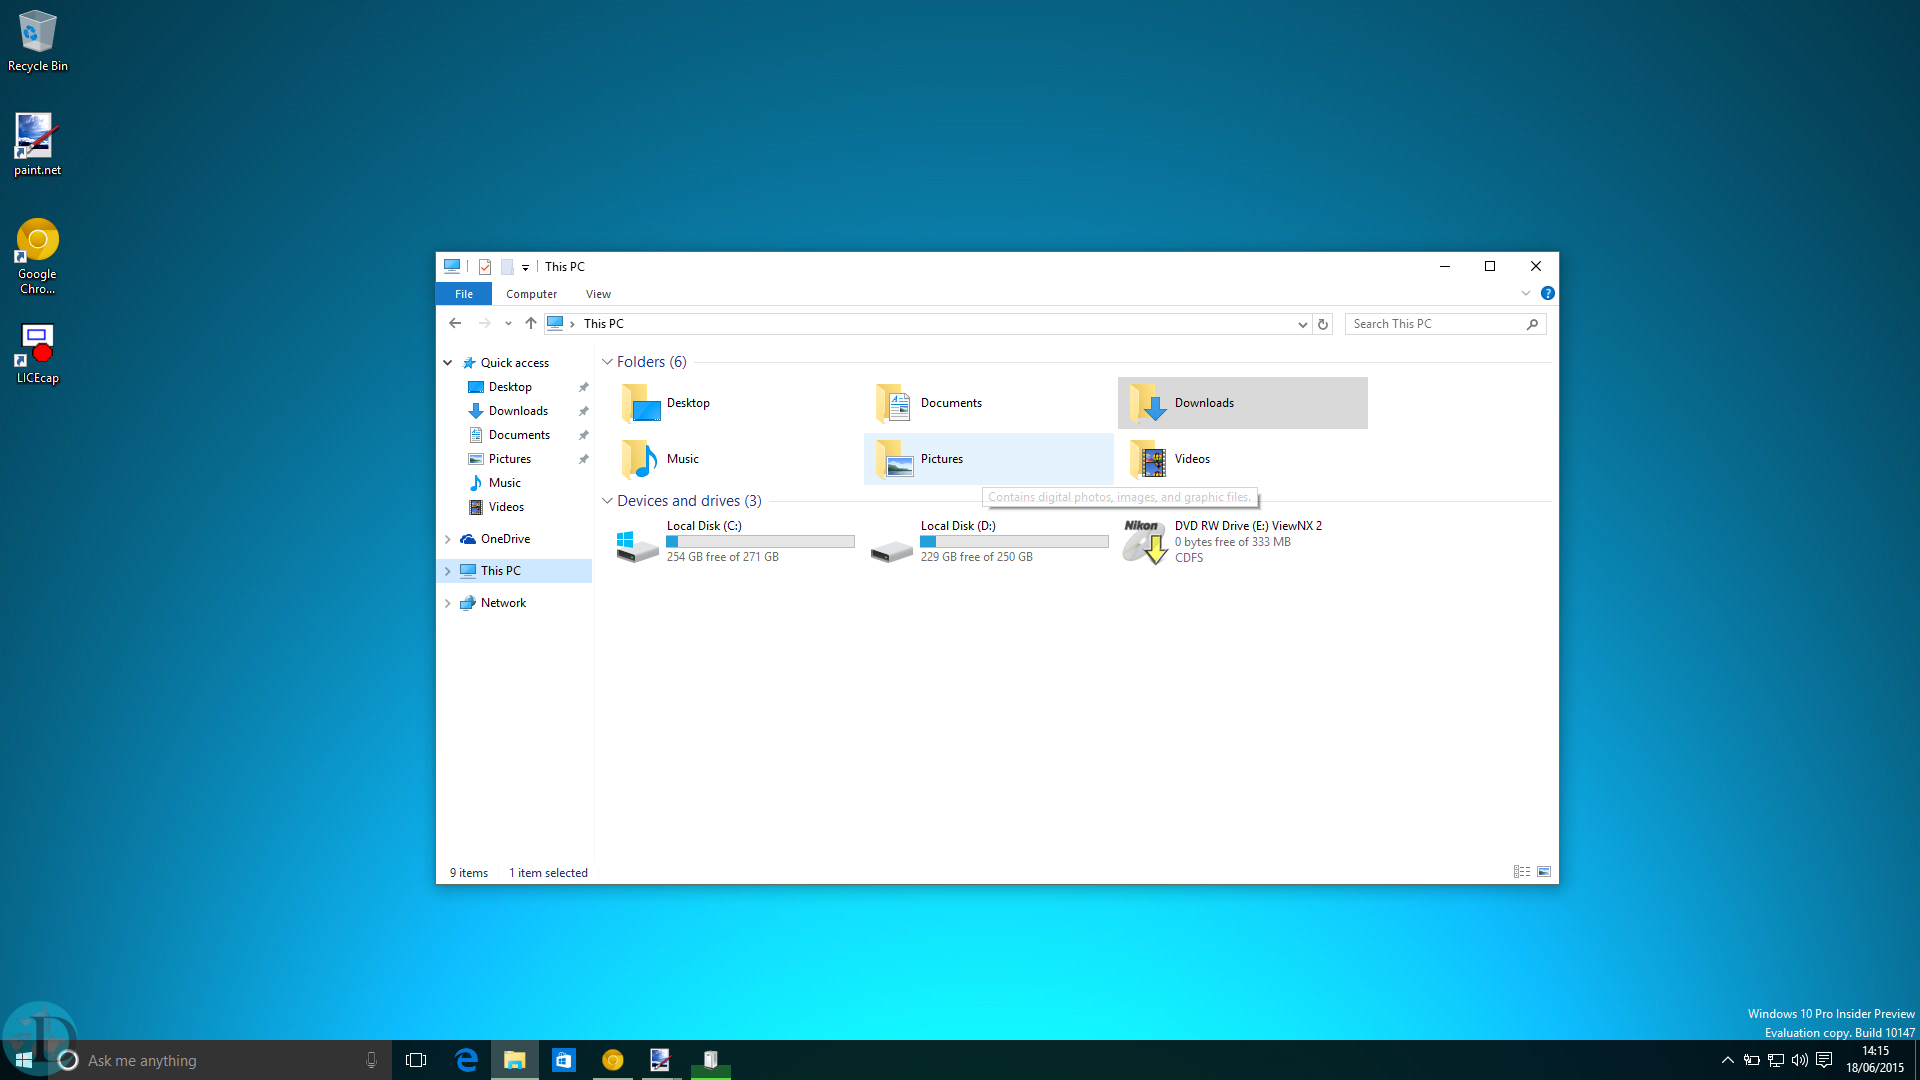 windows 10 build 10147